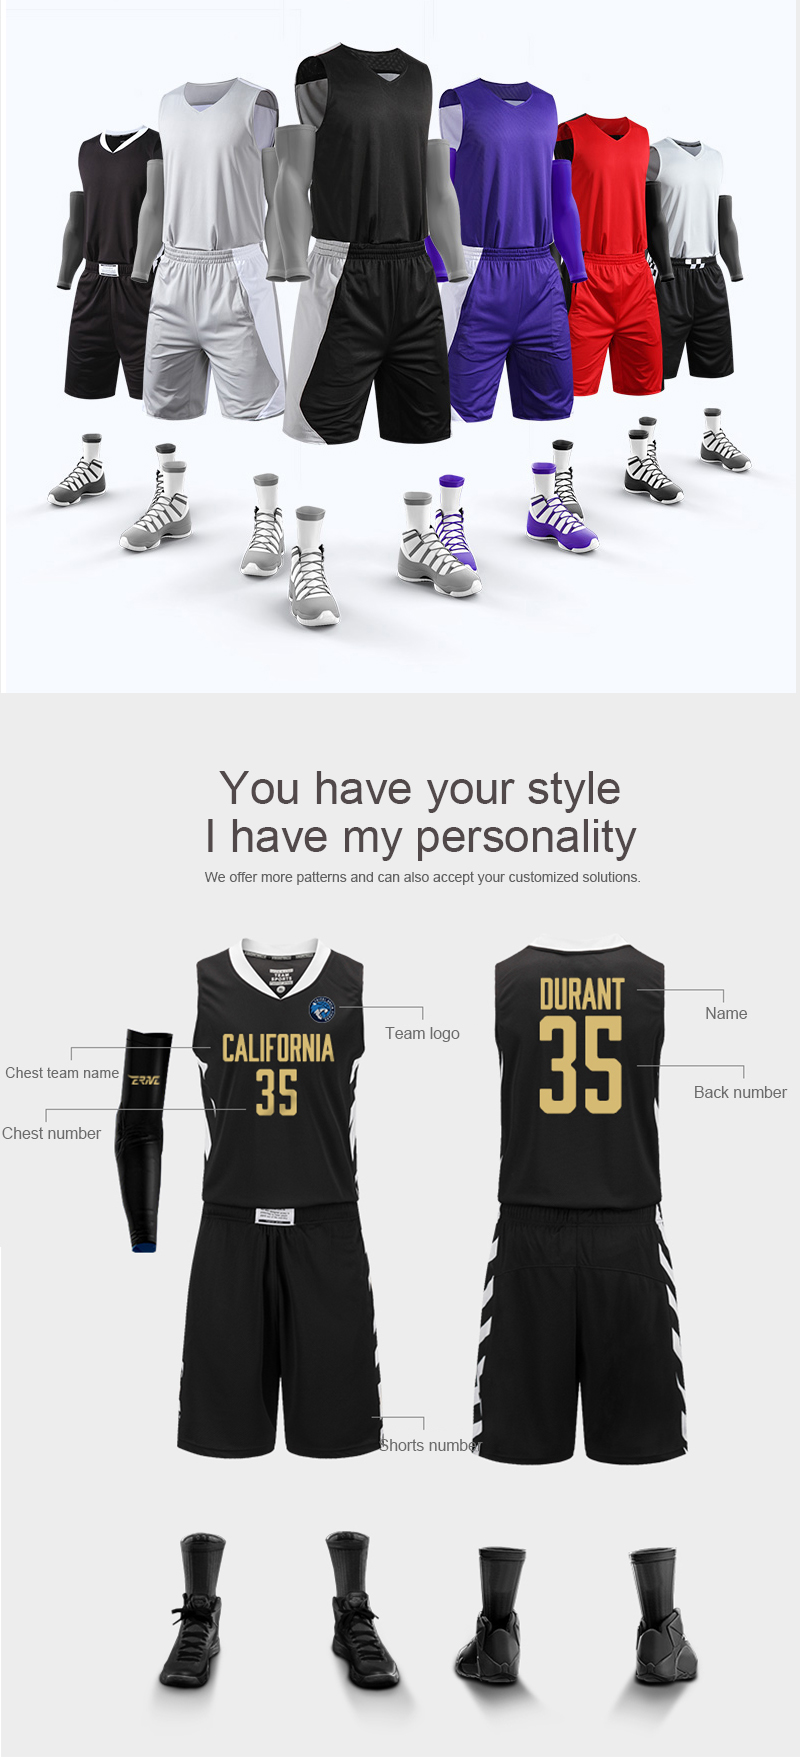 Großhandel reversible custom sublimation camouflage basketball jersey